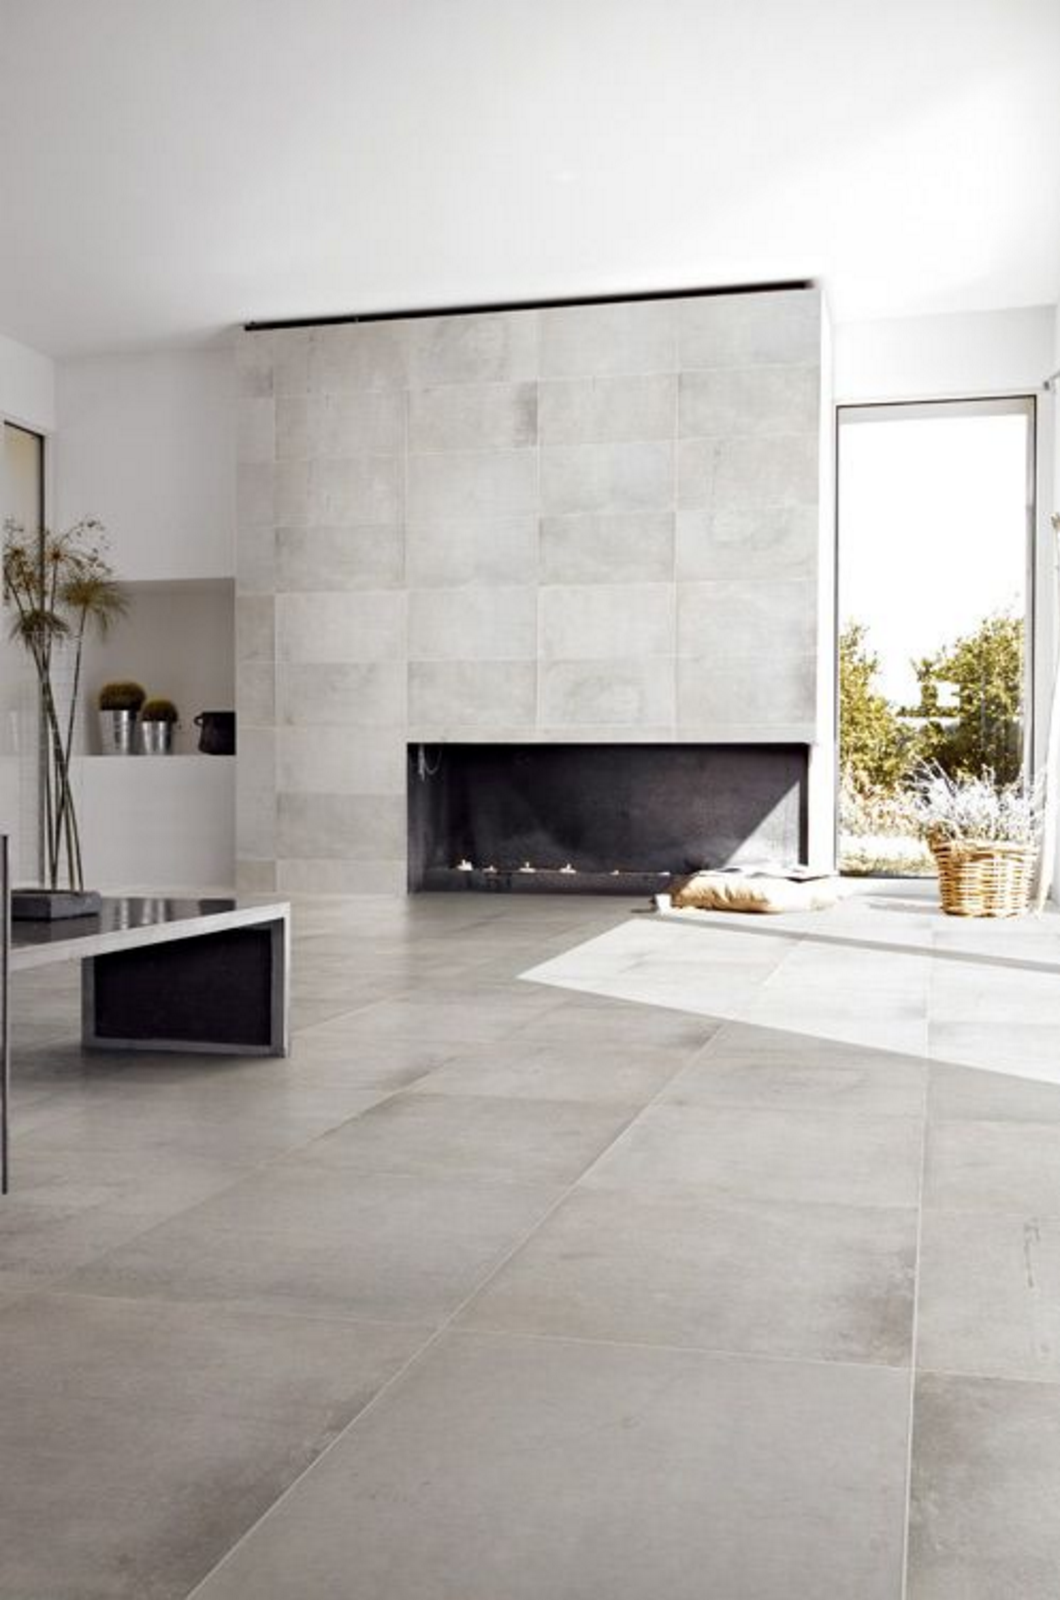 Soaking up this stunning display of natural stone by tierra sol soaking up this stunning display of natural stone by tierra sol ceramic tile dailygadgetfo Image collections